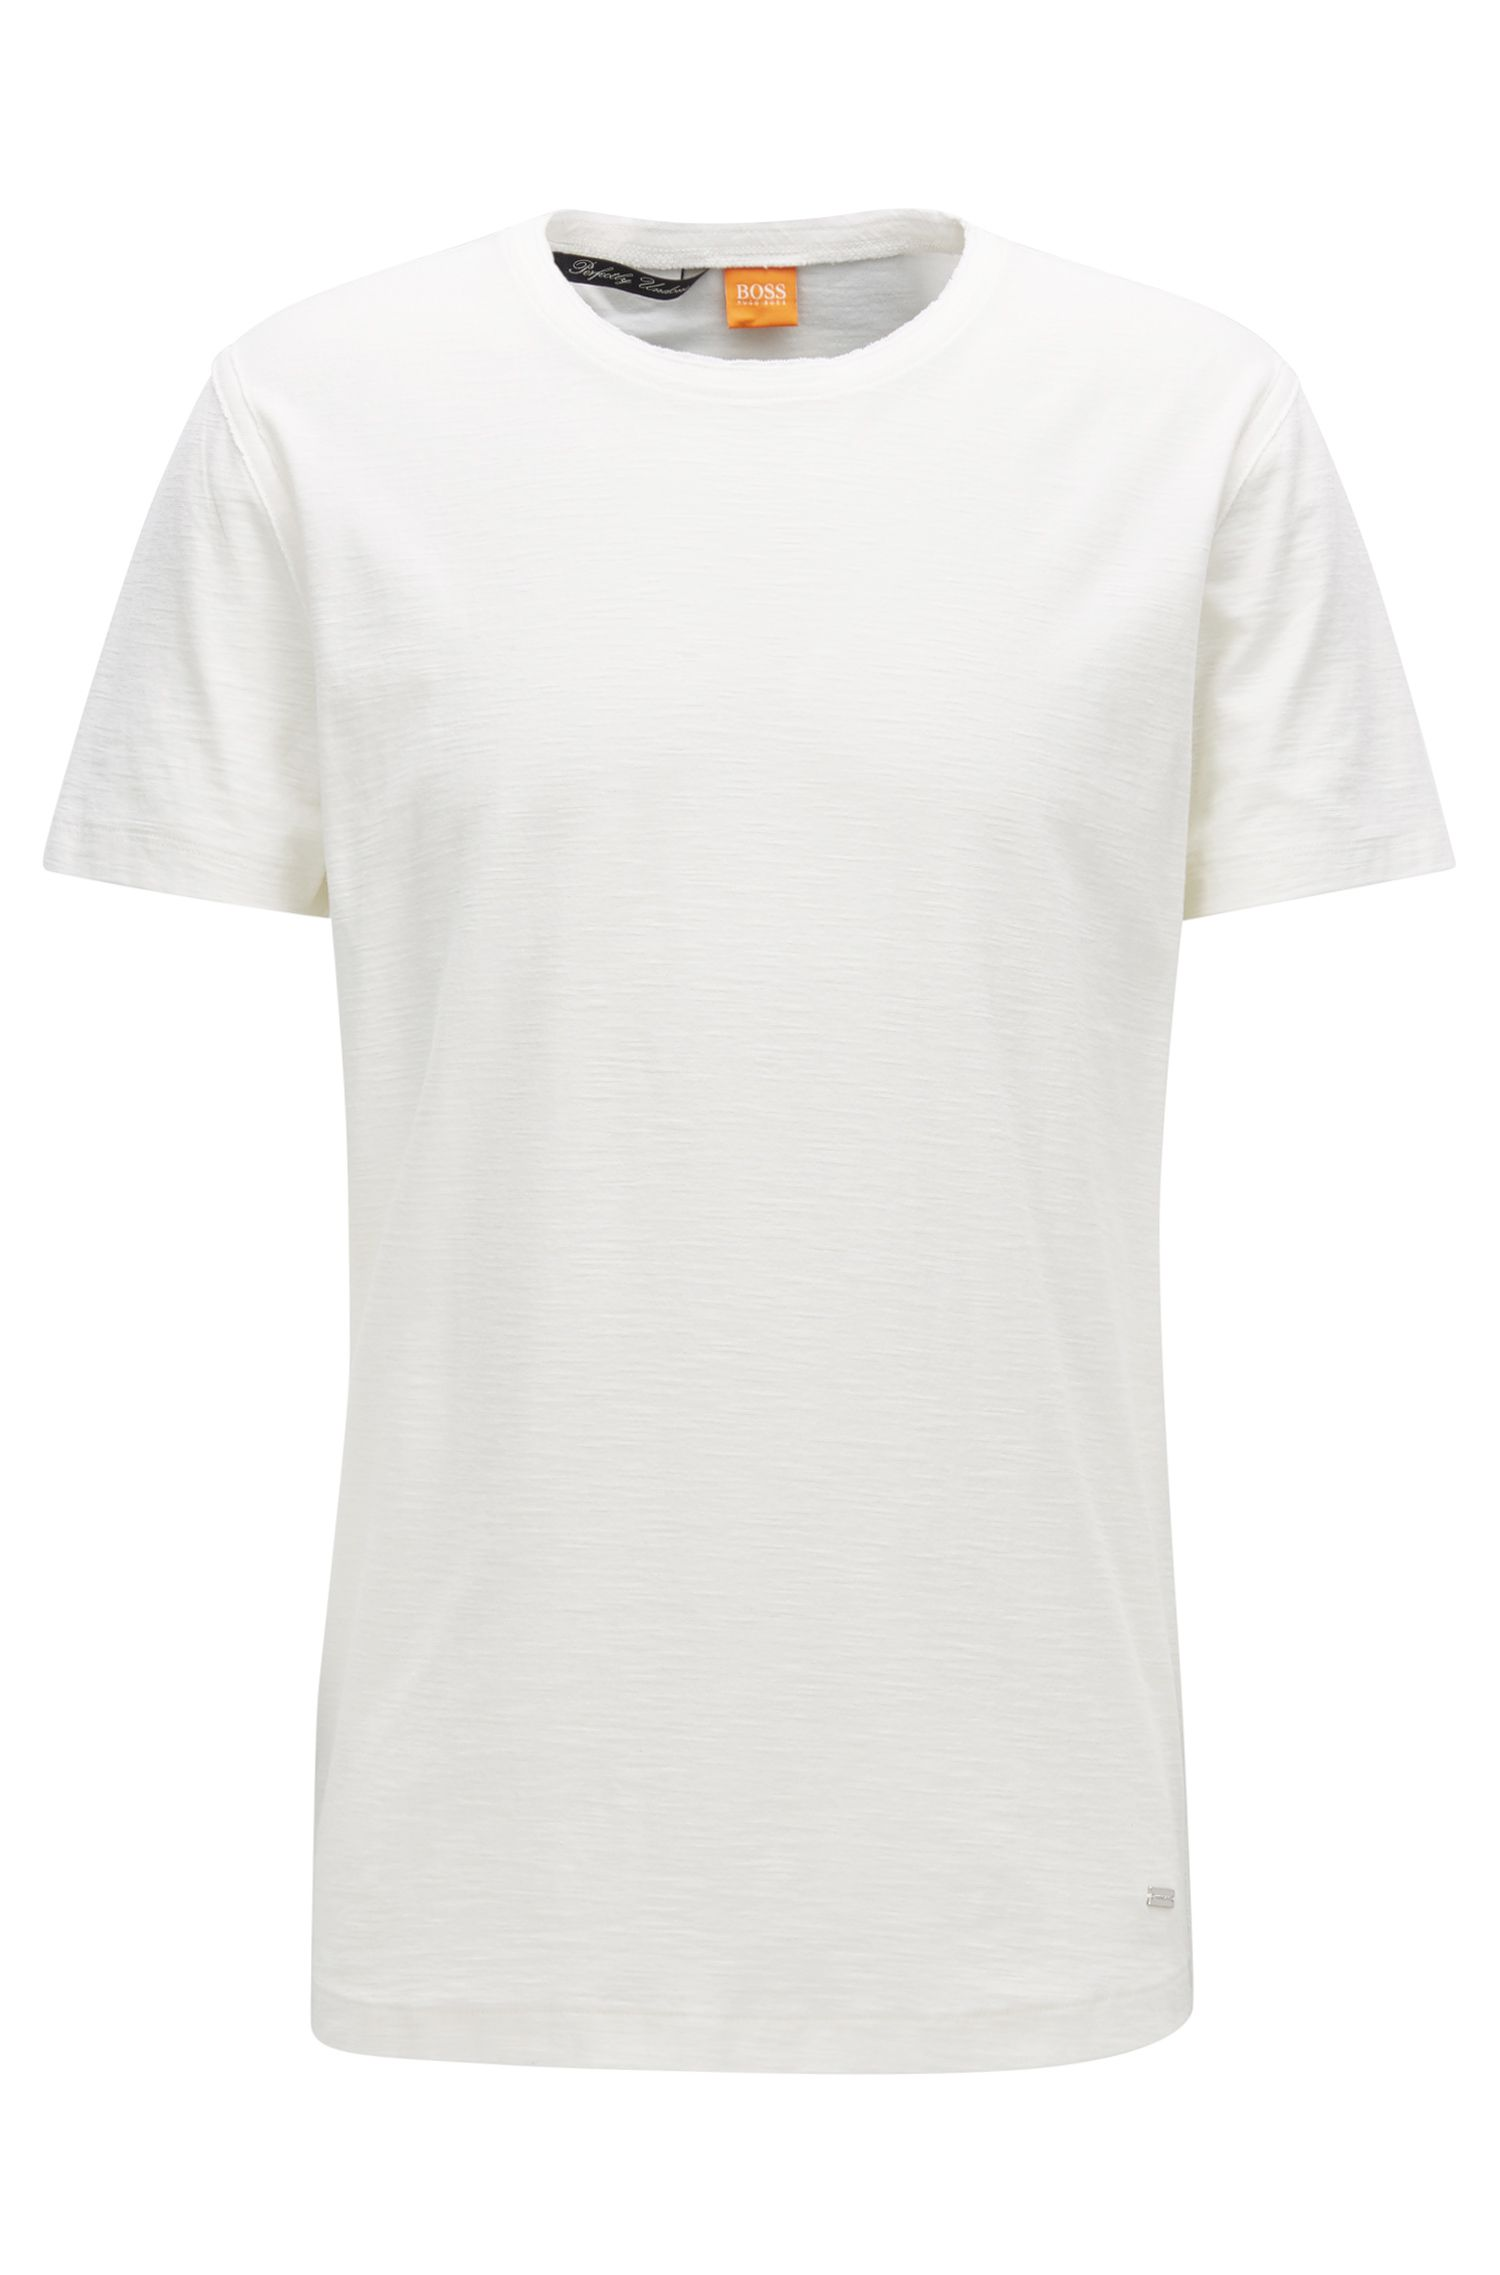 Relaxed-fit T-shirt in slub cotton jersey